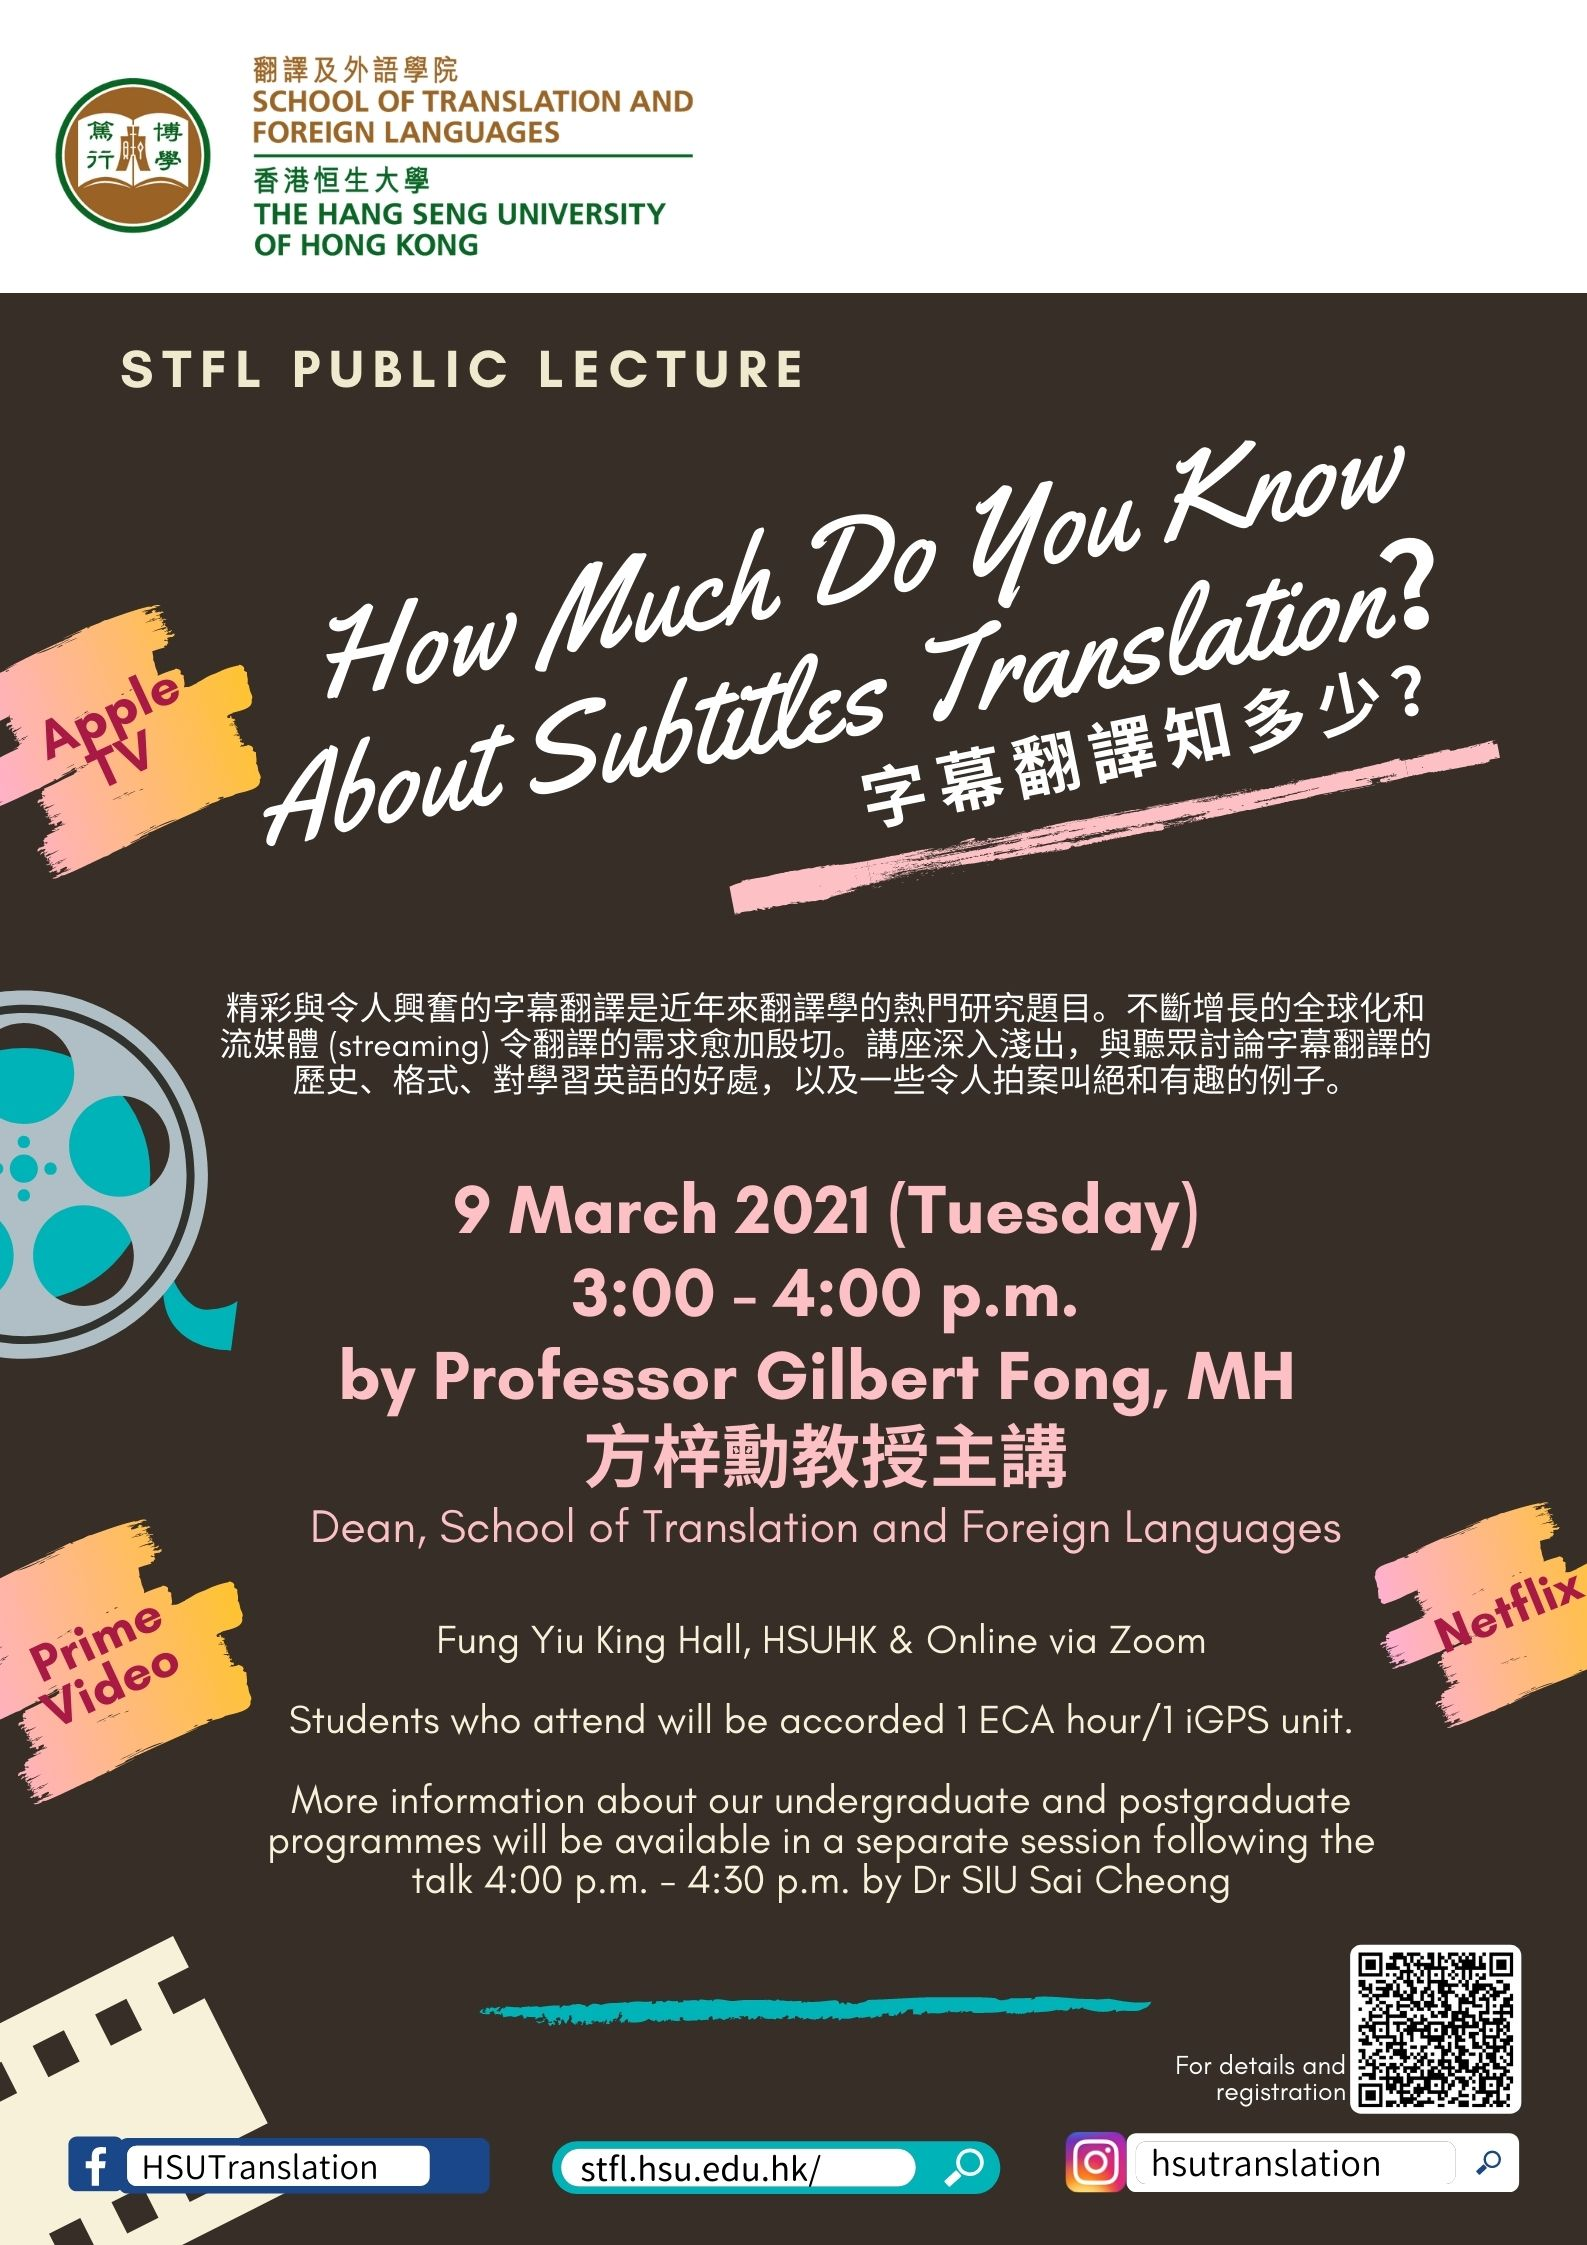 STFL Public Lecture: How Much Do You Know About Subtitles Translation?_poster